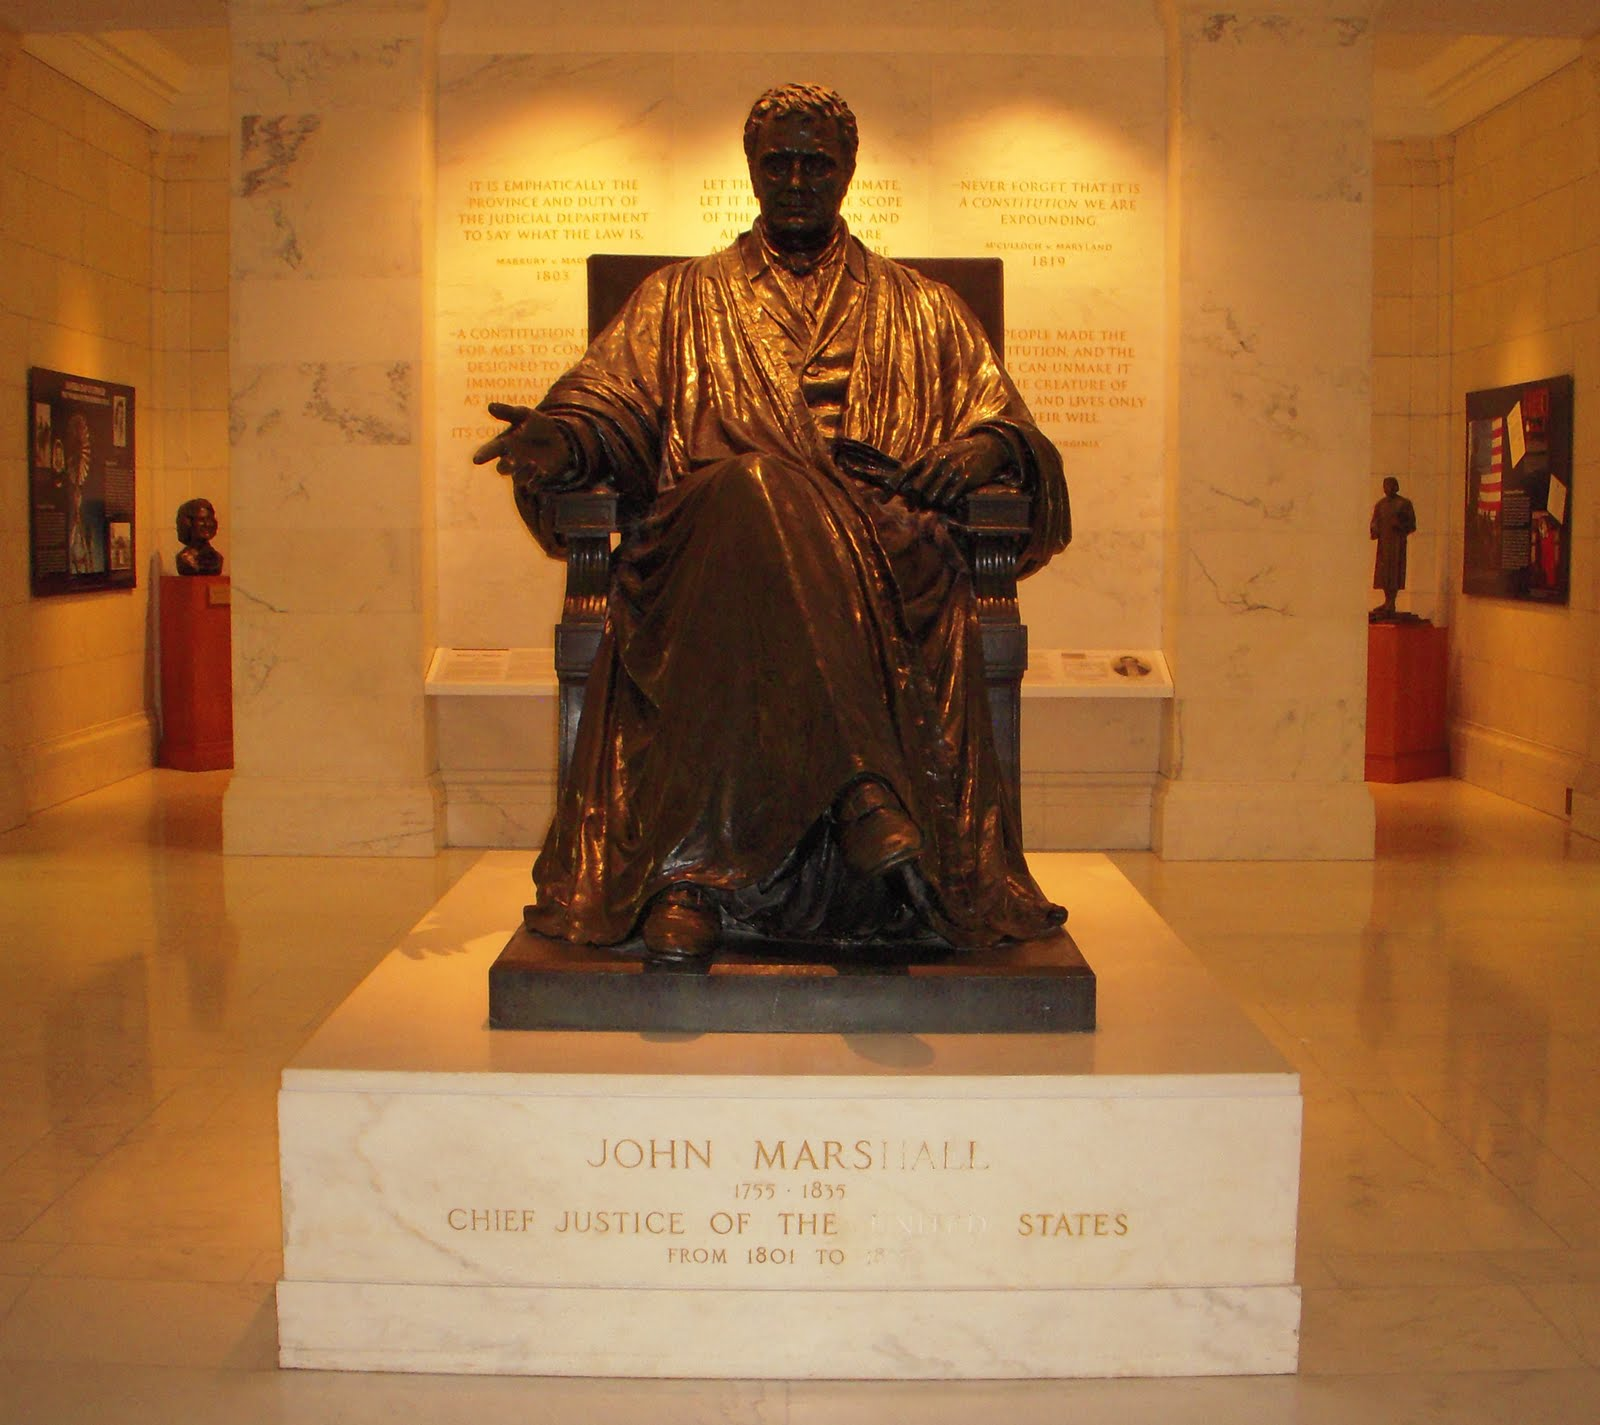 john marshall and the supreme court essay 17311 supreme court justice john marshall this paper provides a profile of the life and career of john marshall, who served for 34 years (1801-1835) as the fourth chief justice of the us supreme court.